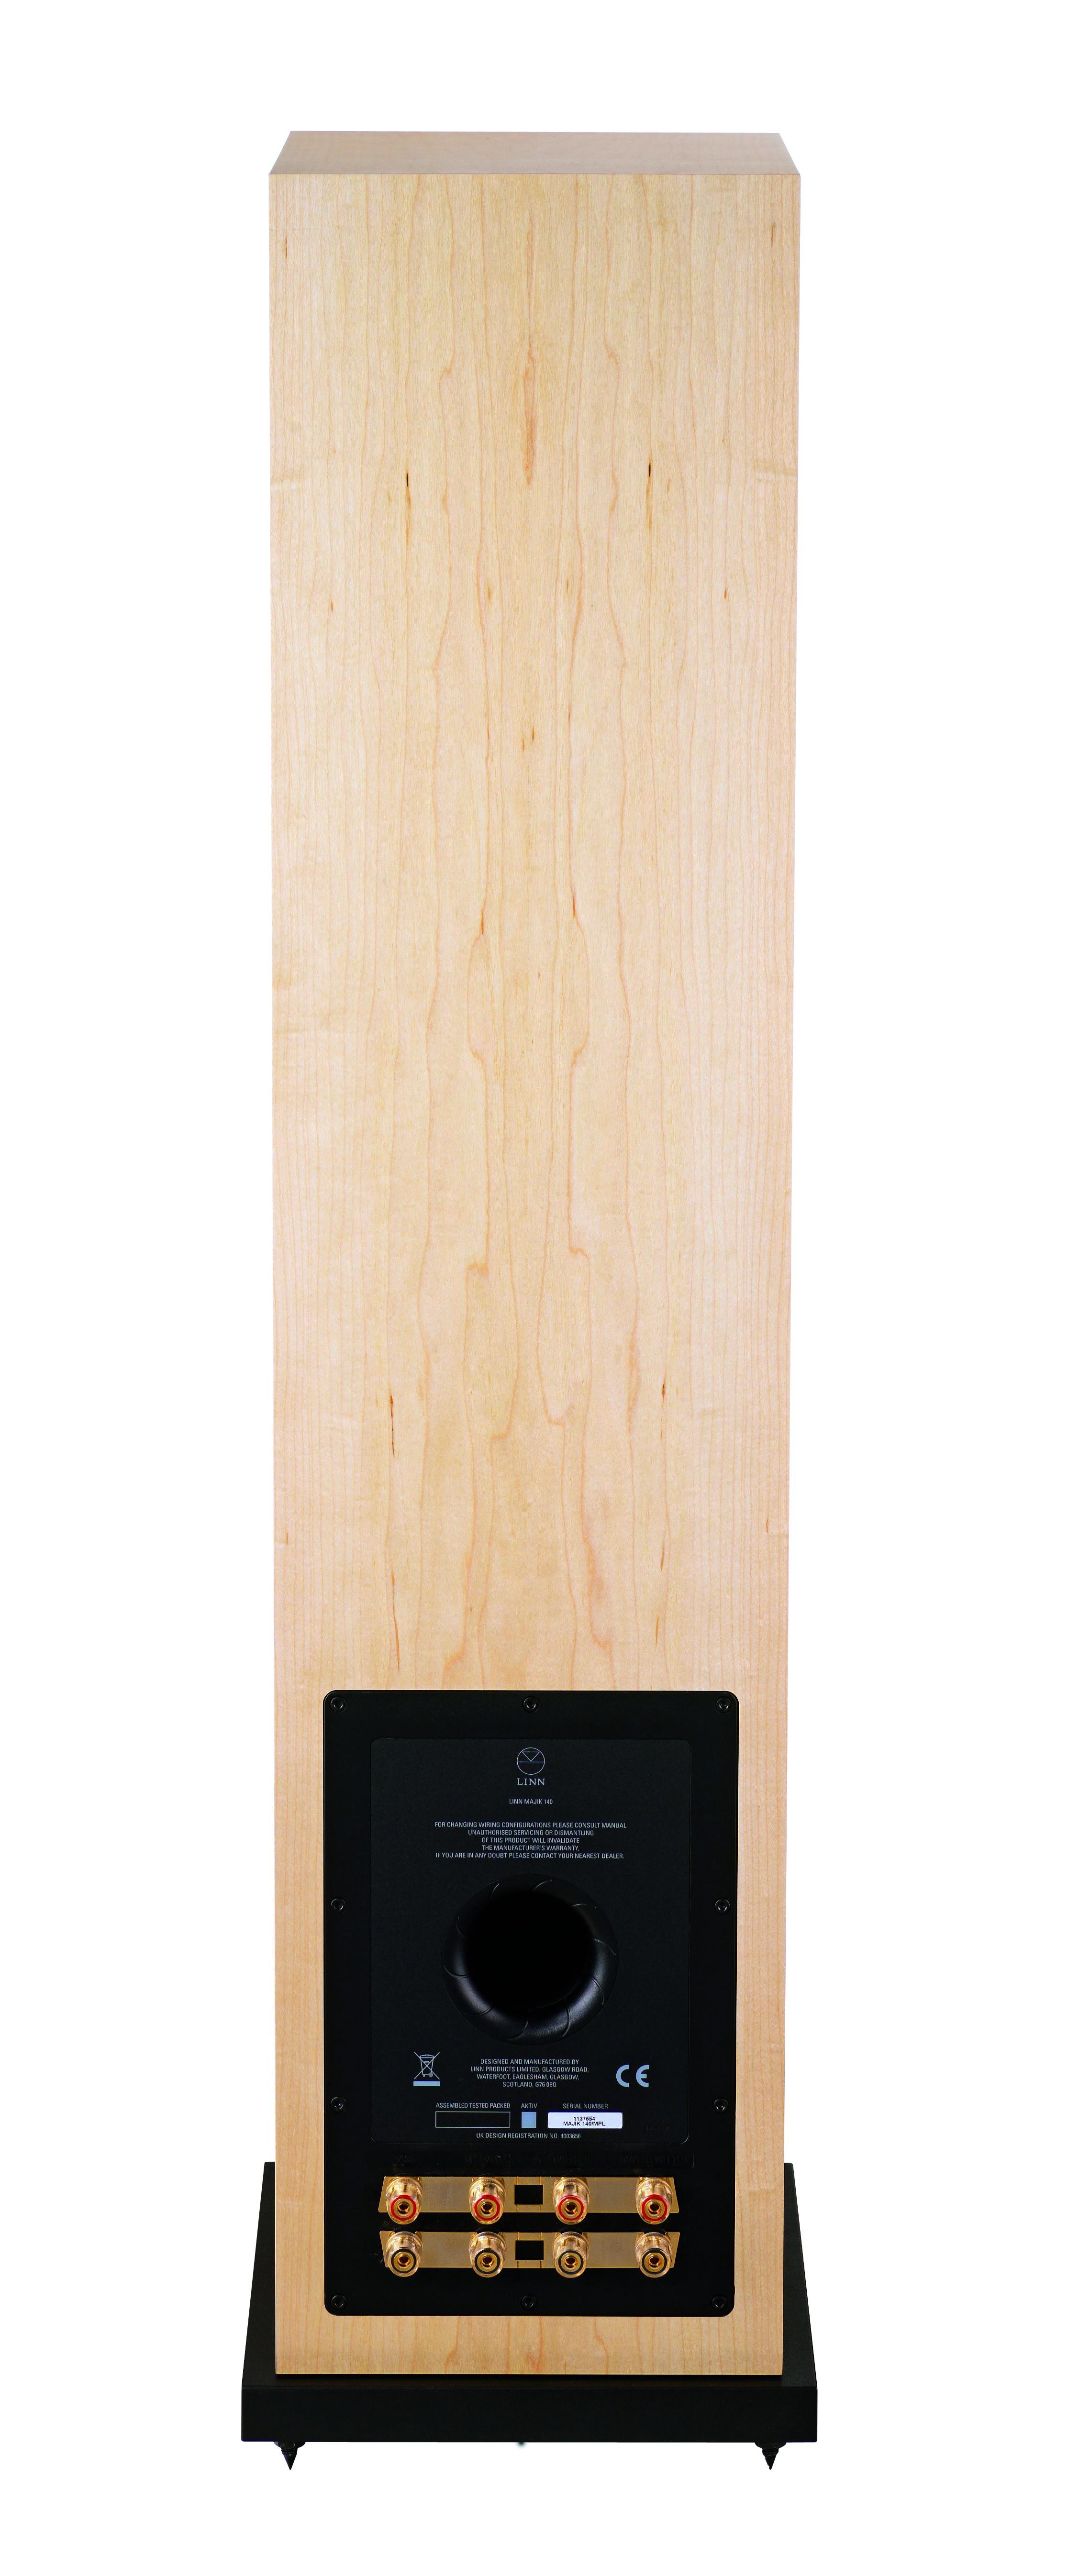 linn majik 140 loudspeaker clever home automation. Black Bedroom Furniture Sets. Home Design Ideas